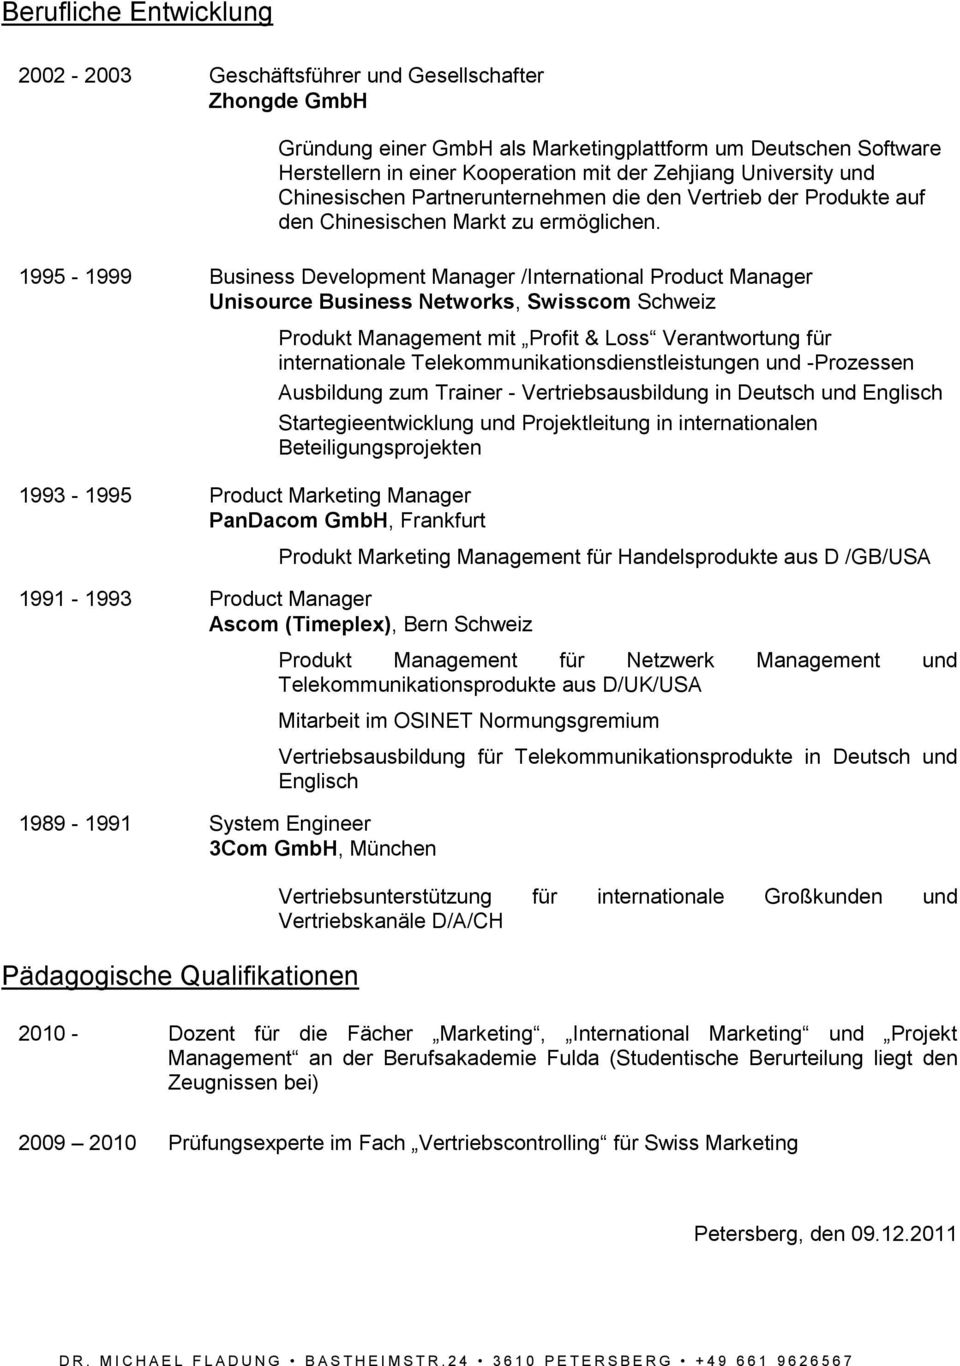 1995-1999 Business Development Manager /International Product Manager Unisource Business Networks, Schweiz 1993-1995 Product Marketing Manager PanDacom GmbH, Frankfurt Produkt mit Profit & Loss